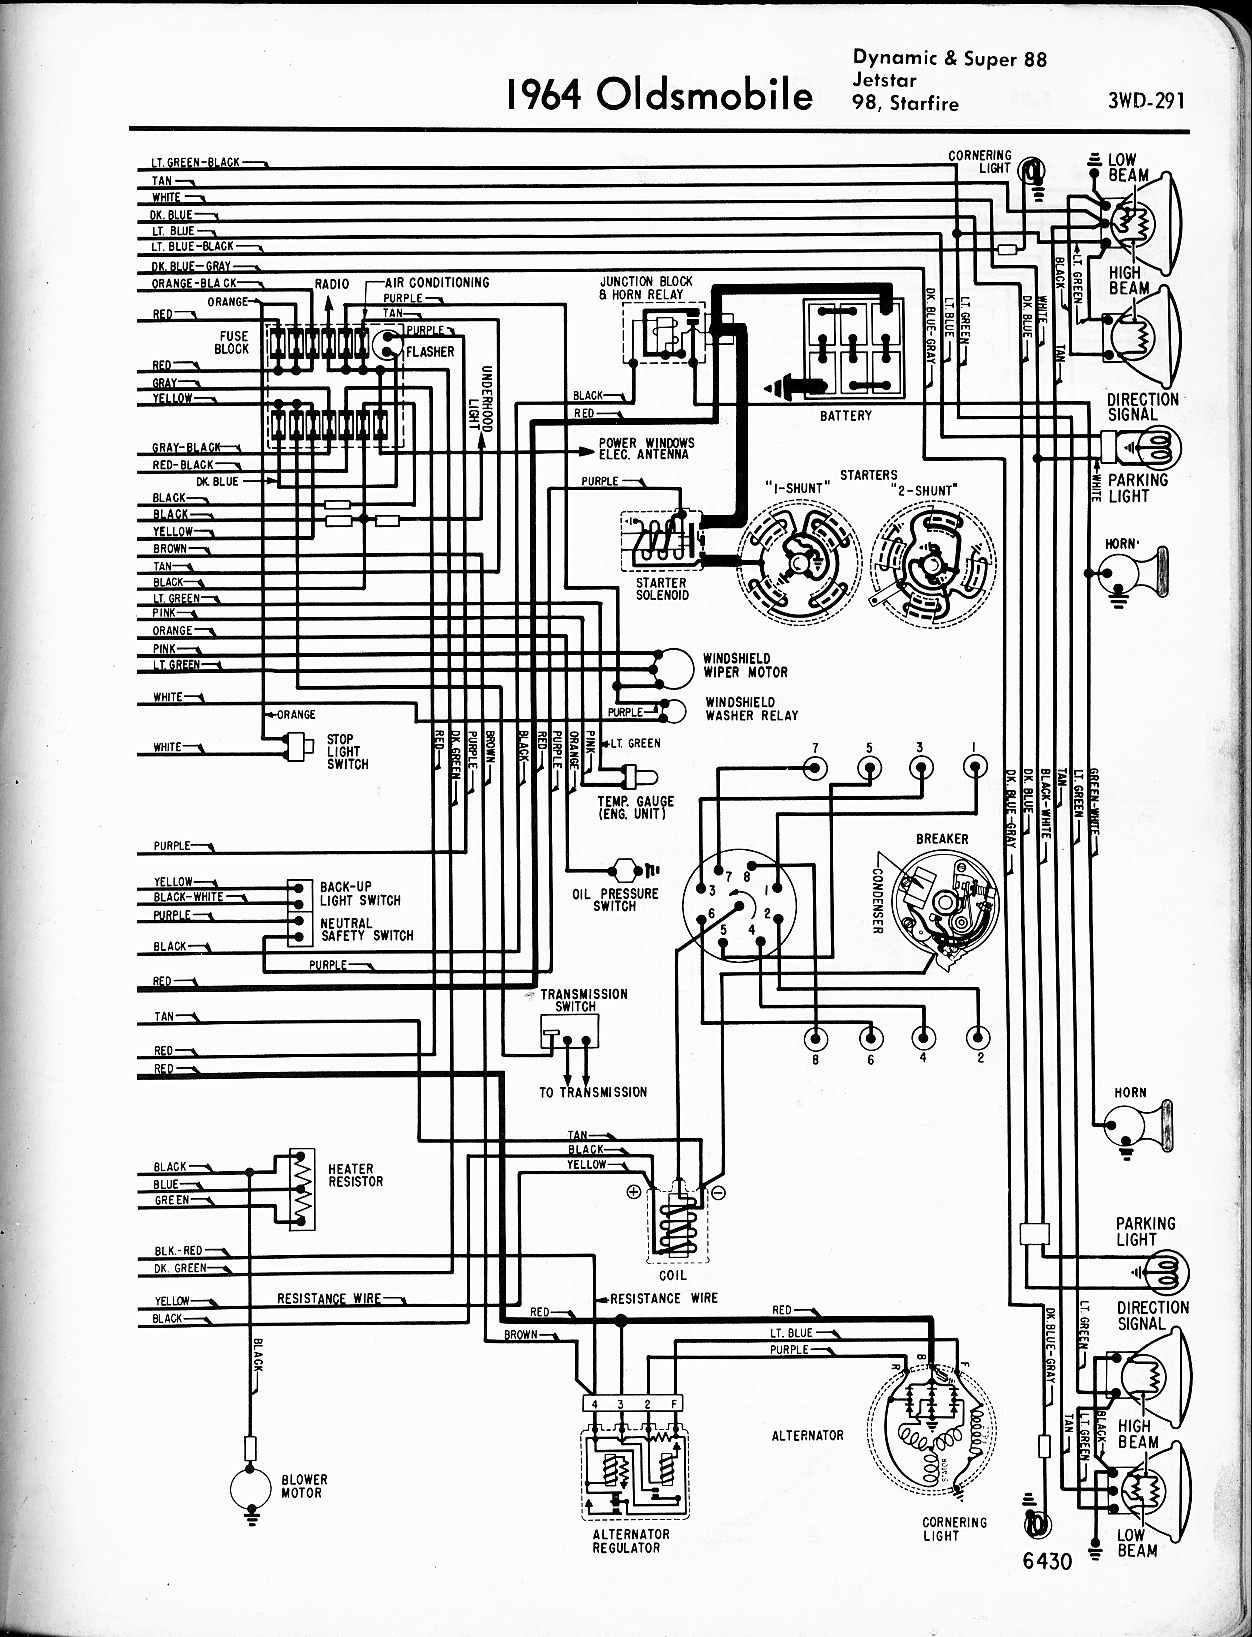 MWire5765 291 oldsmobile wiring diagrams the old car manual project  at fashall.co